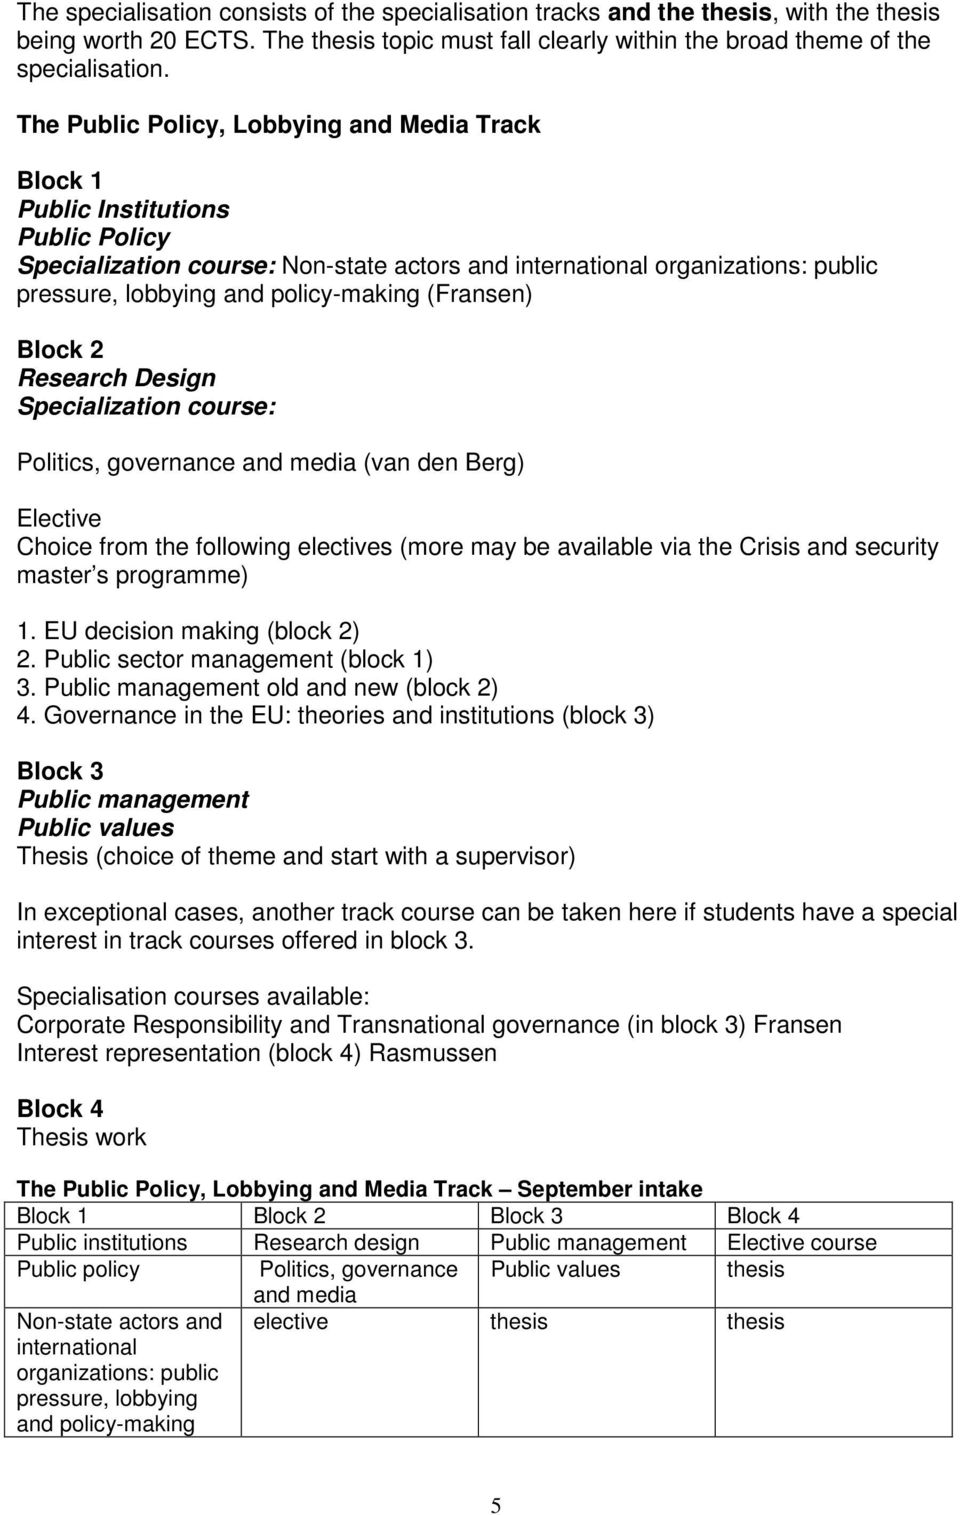 policy-making (Fransen) Block 2 Research Design Specialization course: Politics, governance and media (van den Berg) Elective Choice from the following electives (more may be available via the Crisis